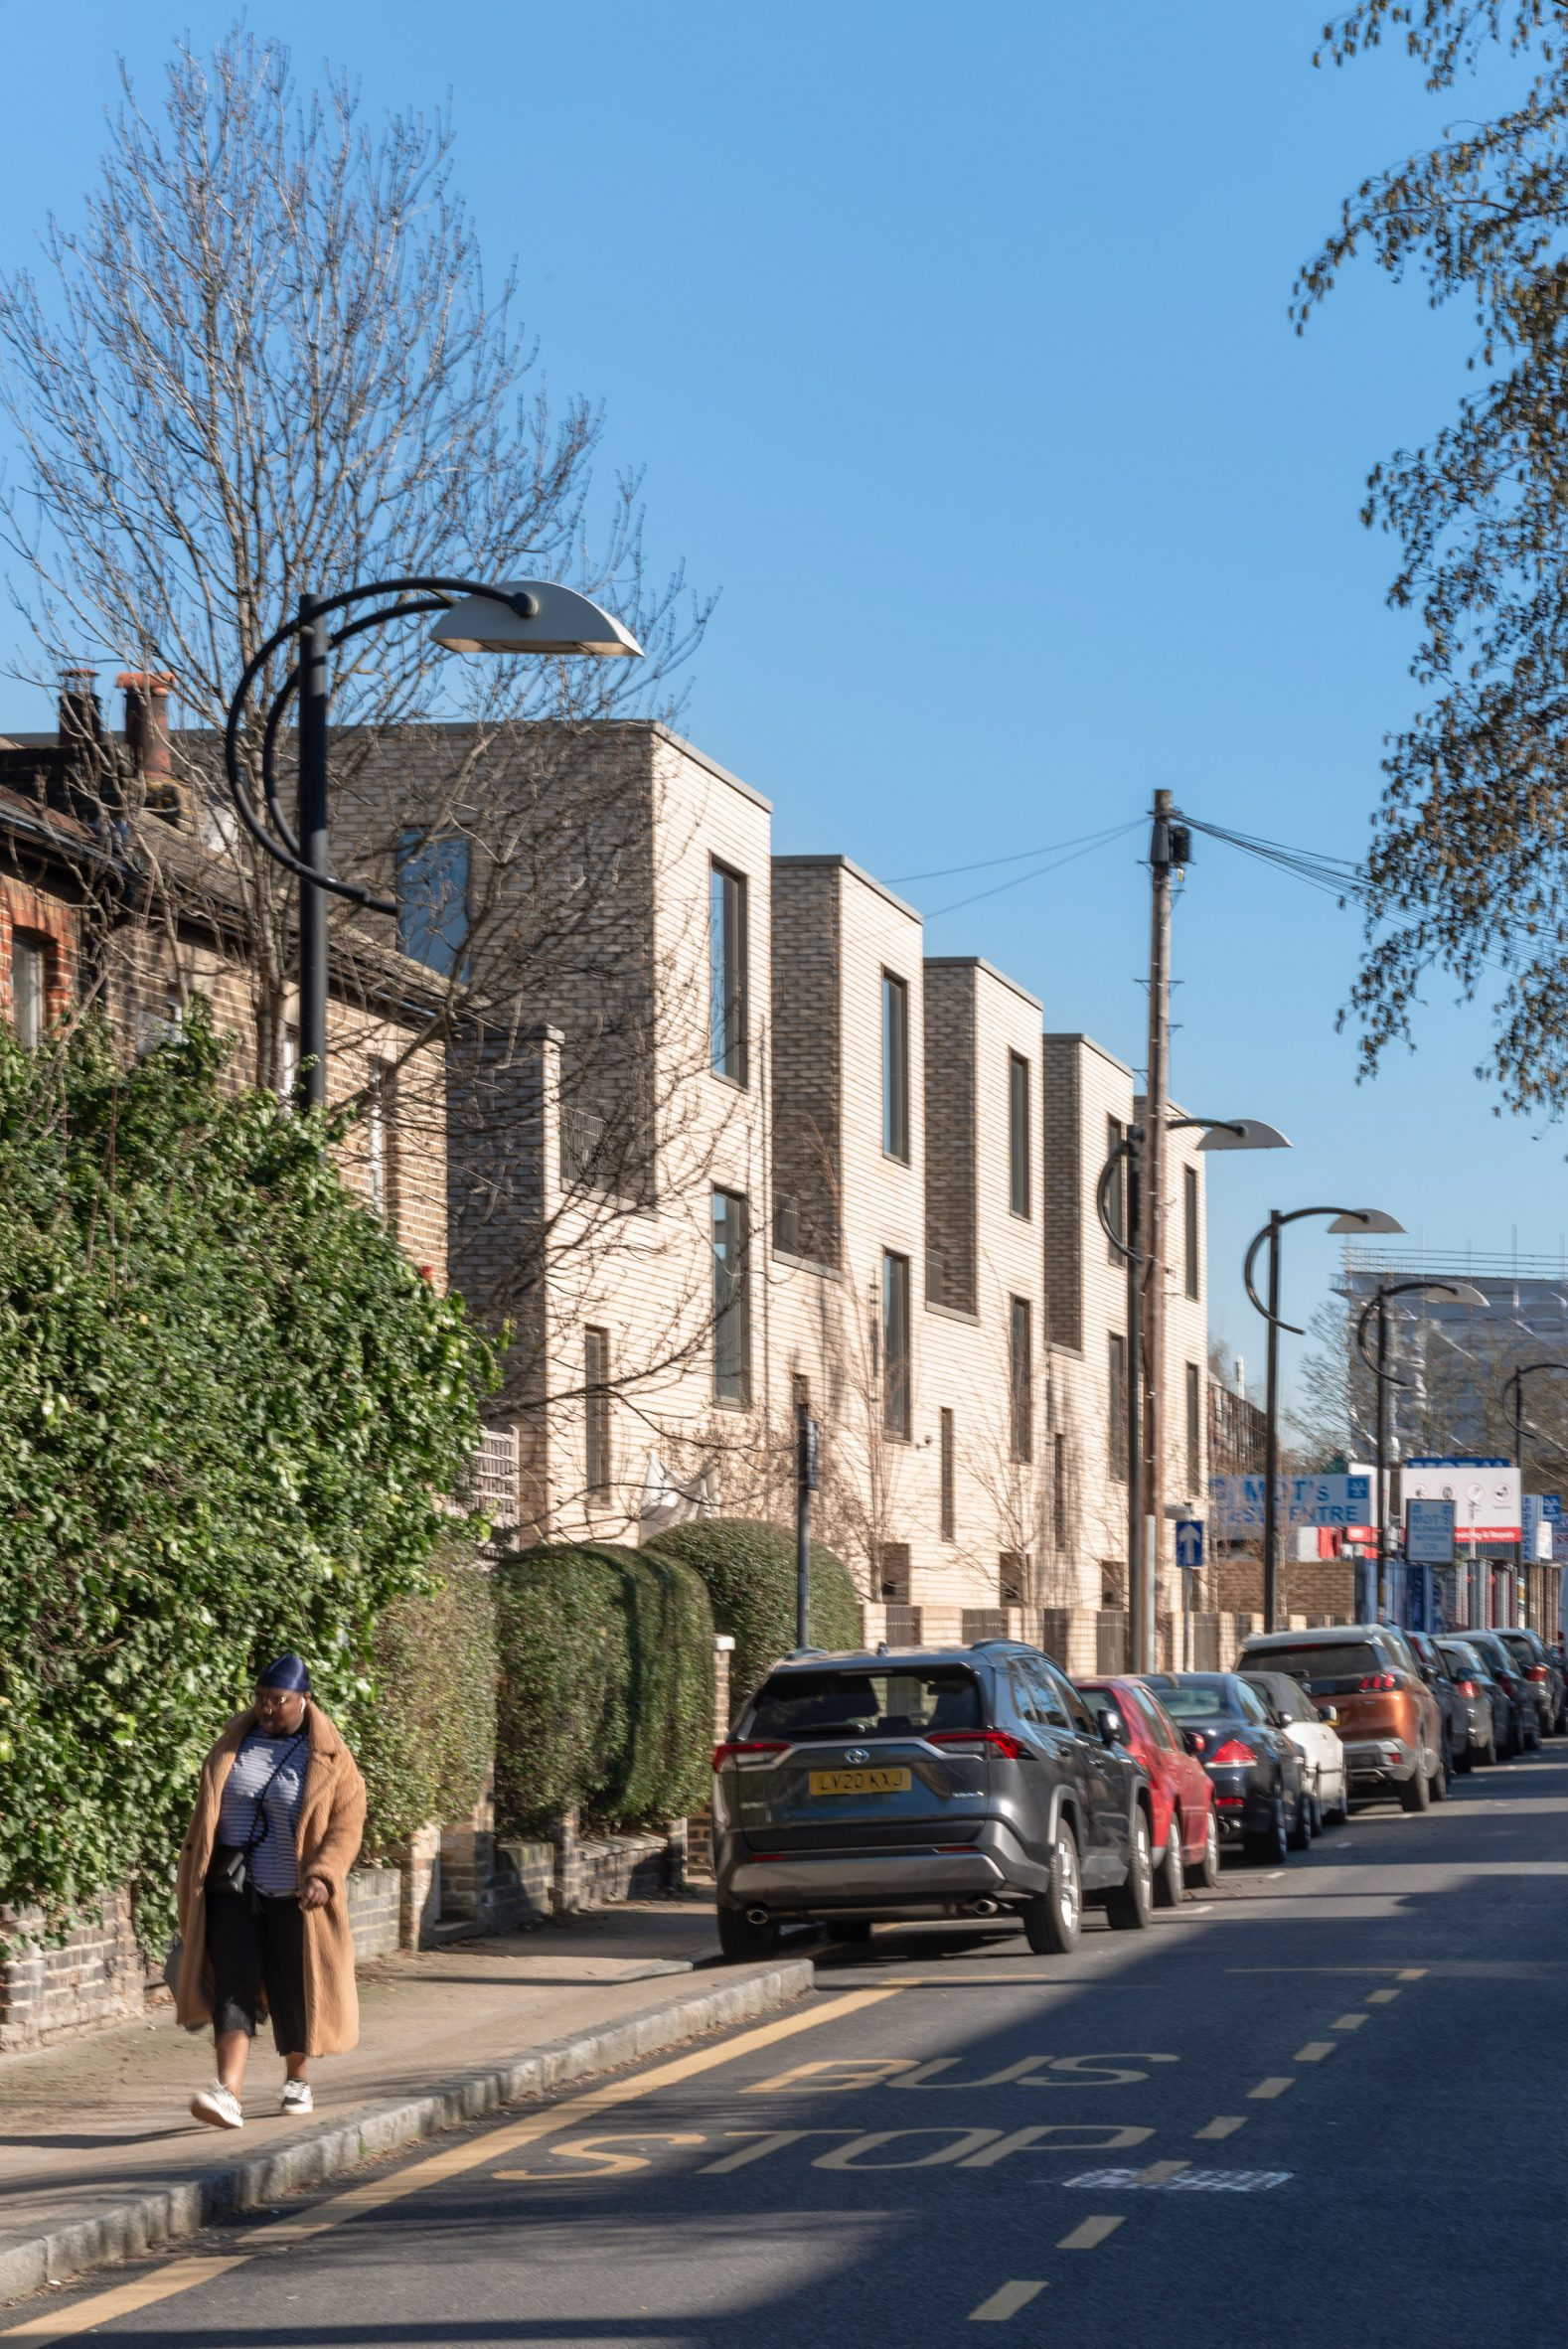 Terrace of houses next to Peckham Rye Station